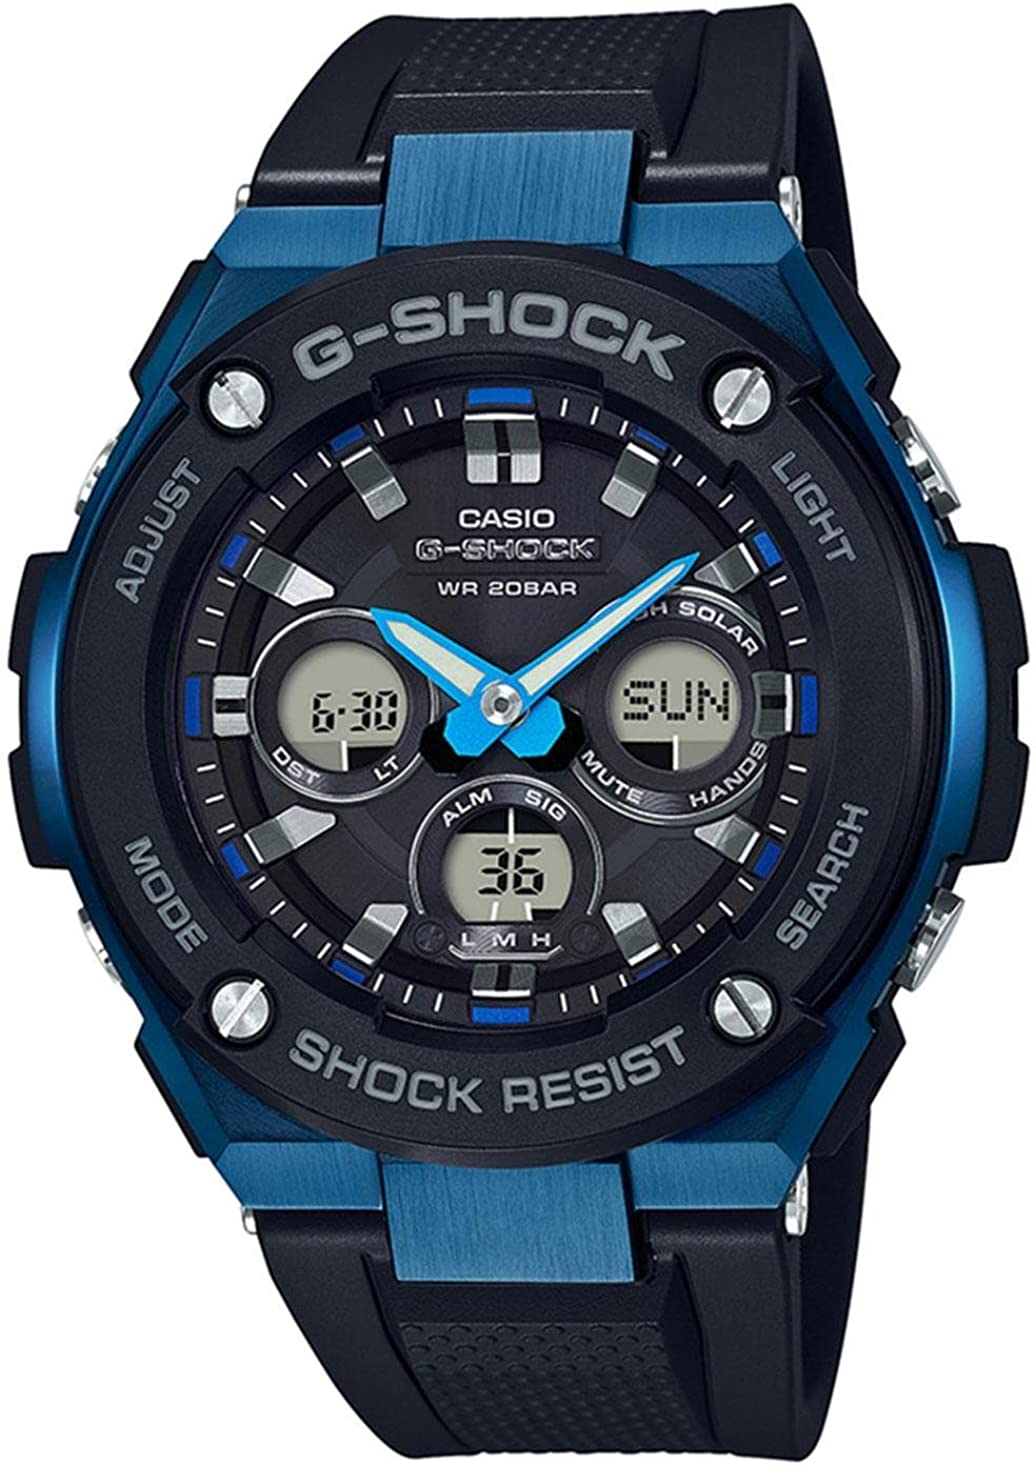 Casio G-Shock G-STEEL SLIM Mens Tough Solar Black Blue Watch GSTS300G-1A2